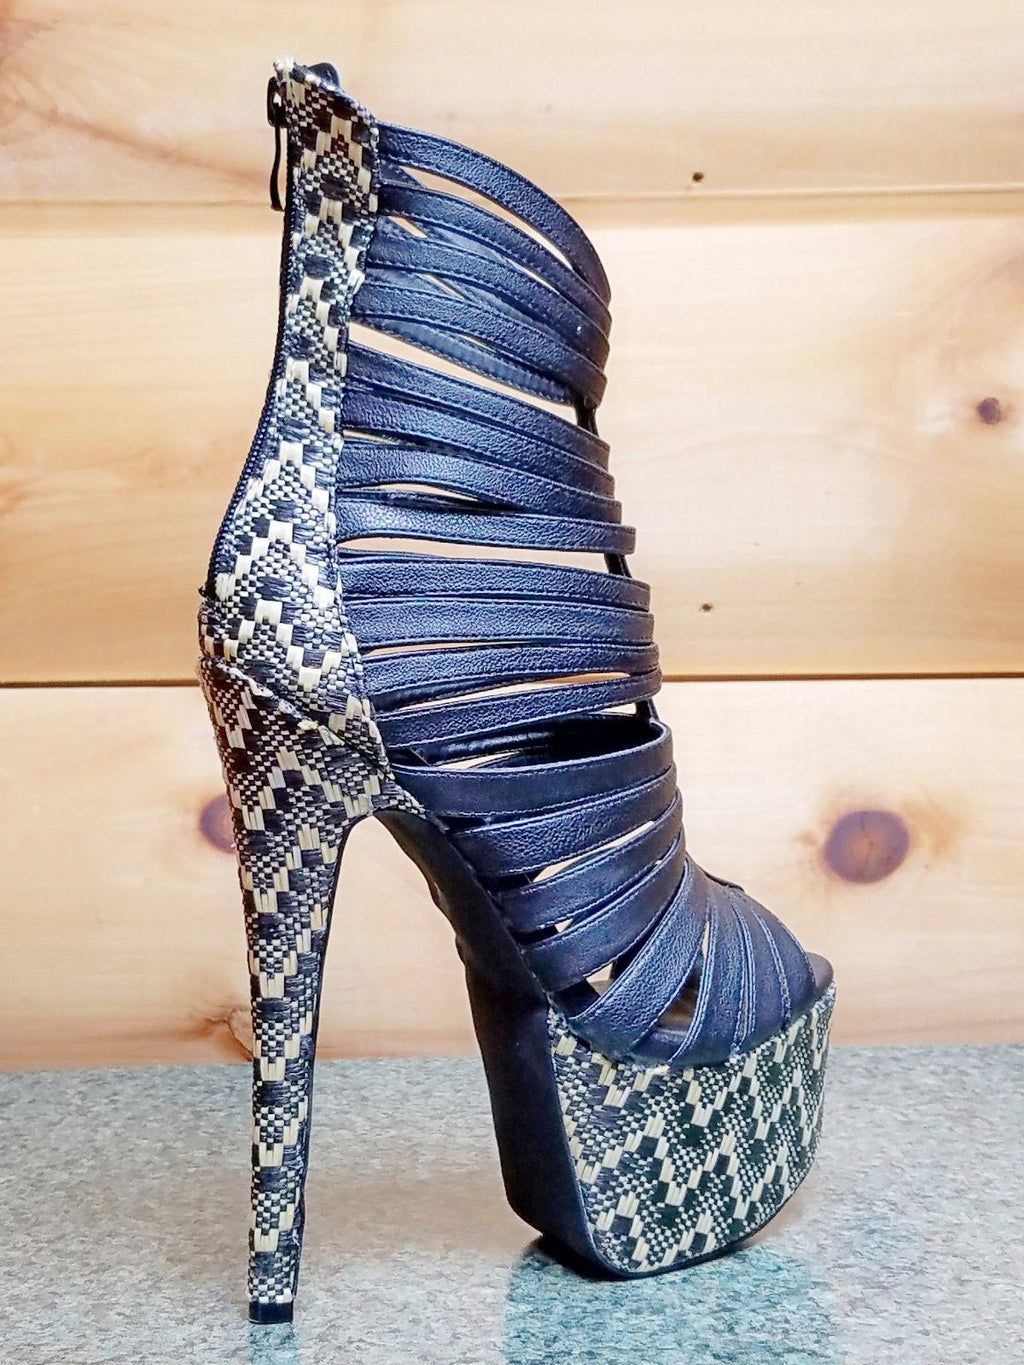 "Dramatics Black Beige Woven Raffita Platform Open Toe Ankle Boot Shoe 7"" Heel"